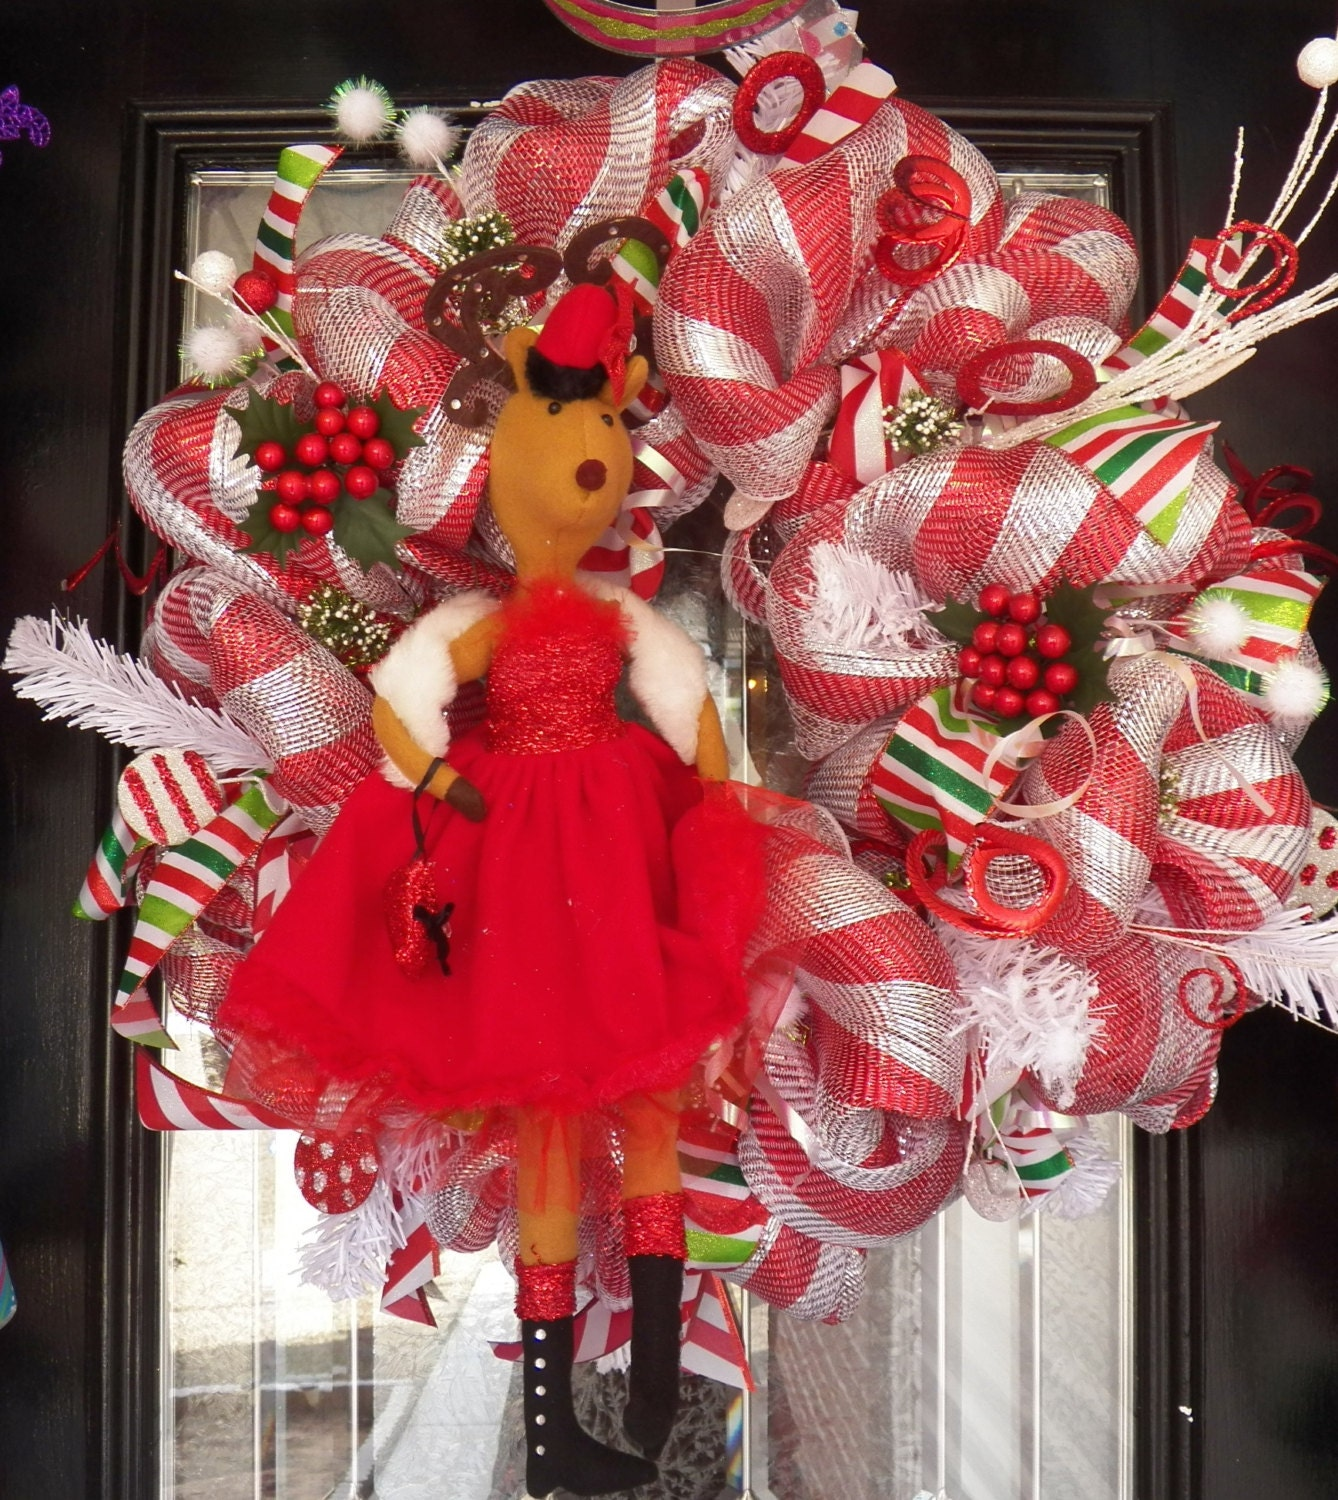 Red and White Christmas Wreath, Christmas Decoration, Holiday Wreaths, Fast Shipping